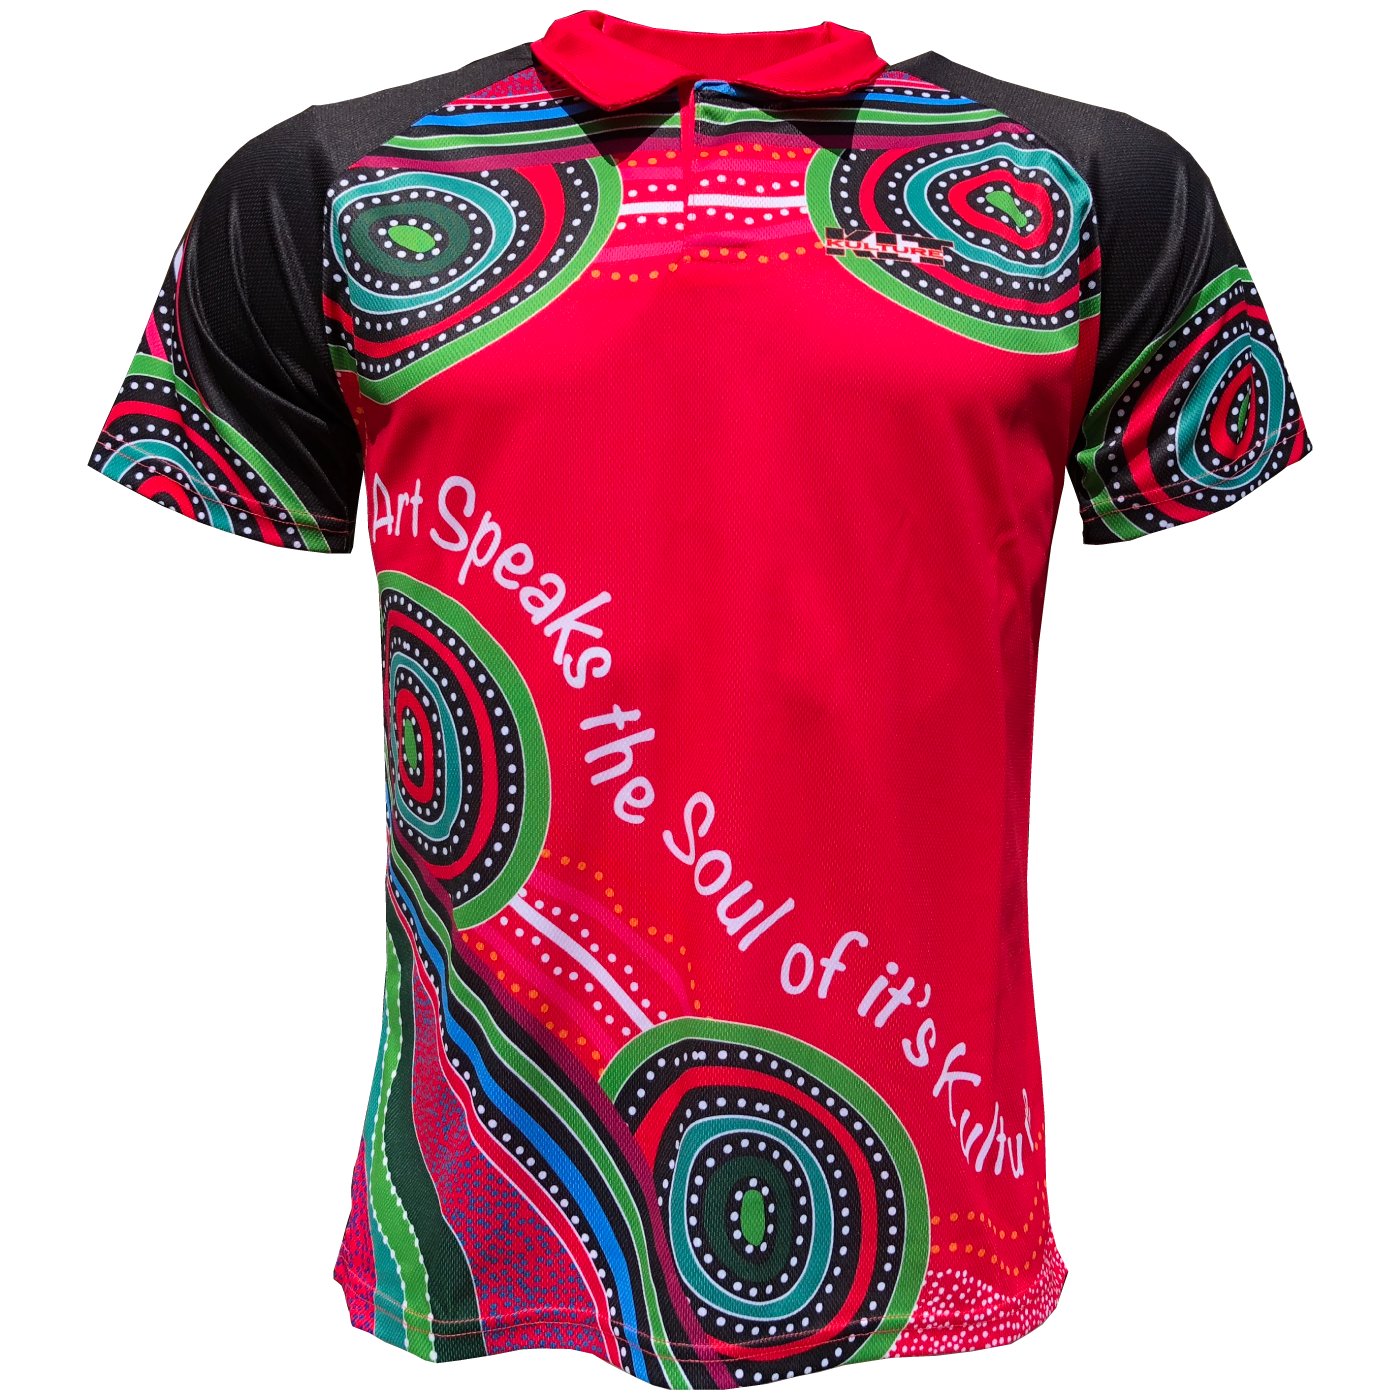 Australia Aboriginal Designed Polo Soul Of Its Kulture